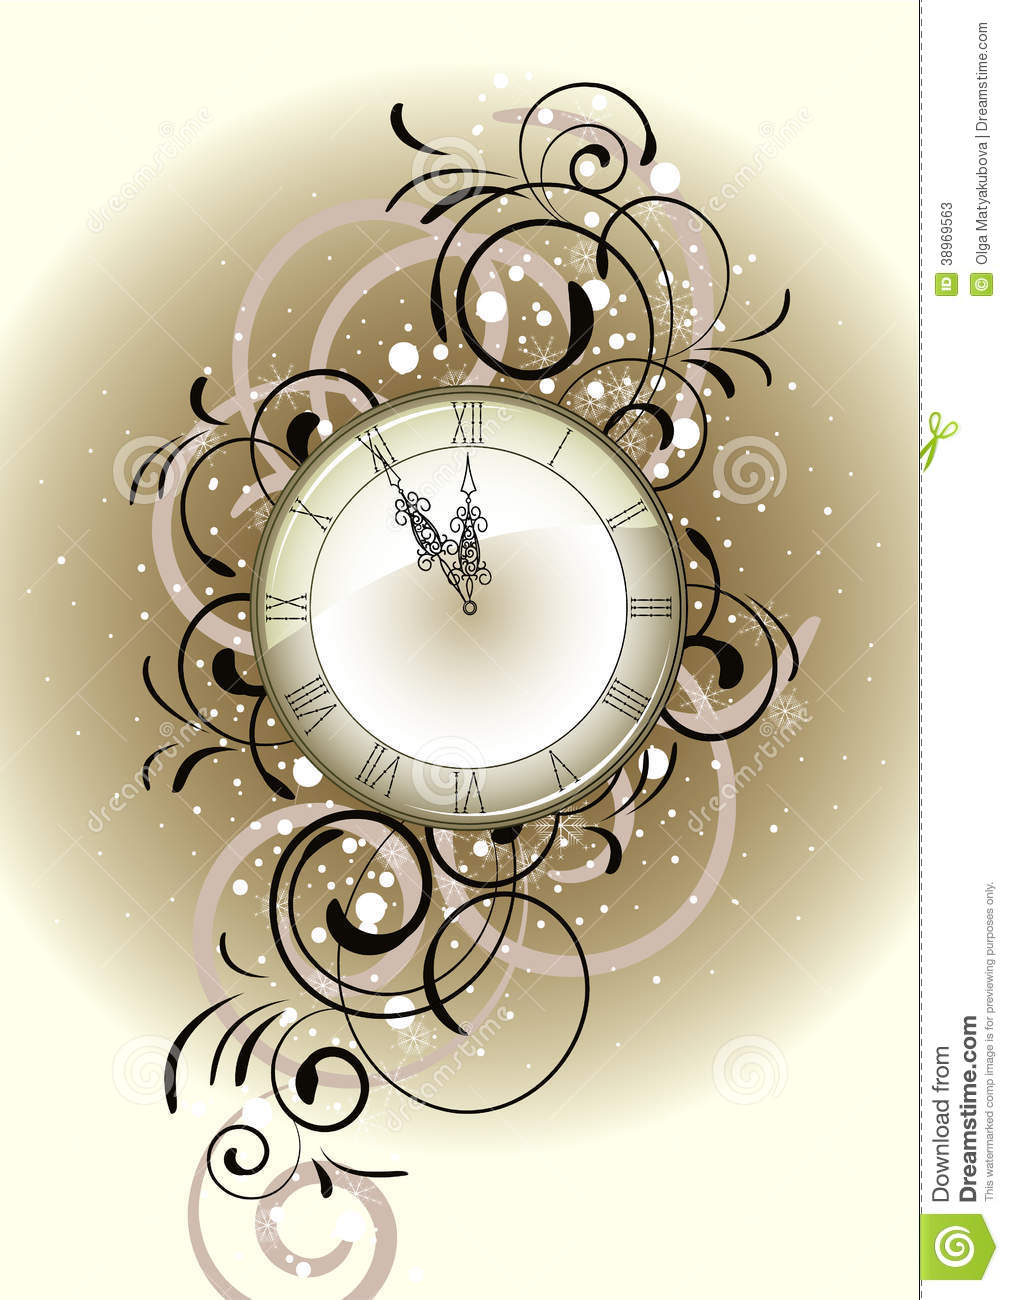 Christmas romantic design with antique clock stock vector image 38969563 - Antique clock designs for your home ...